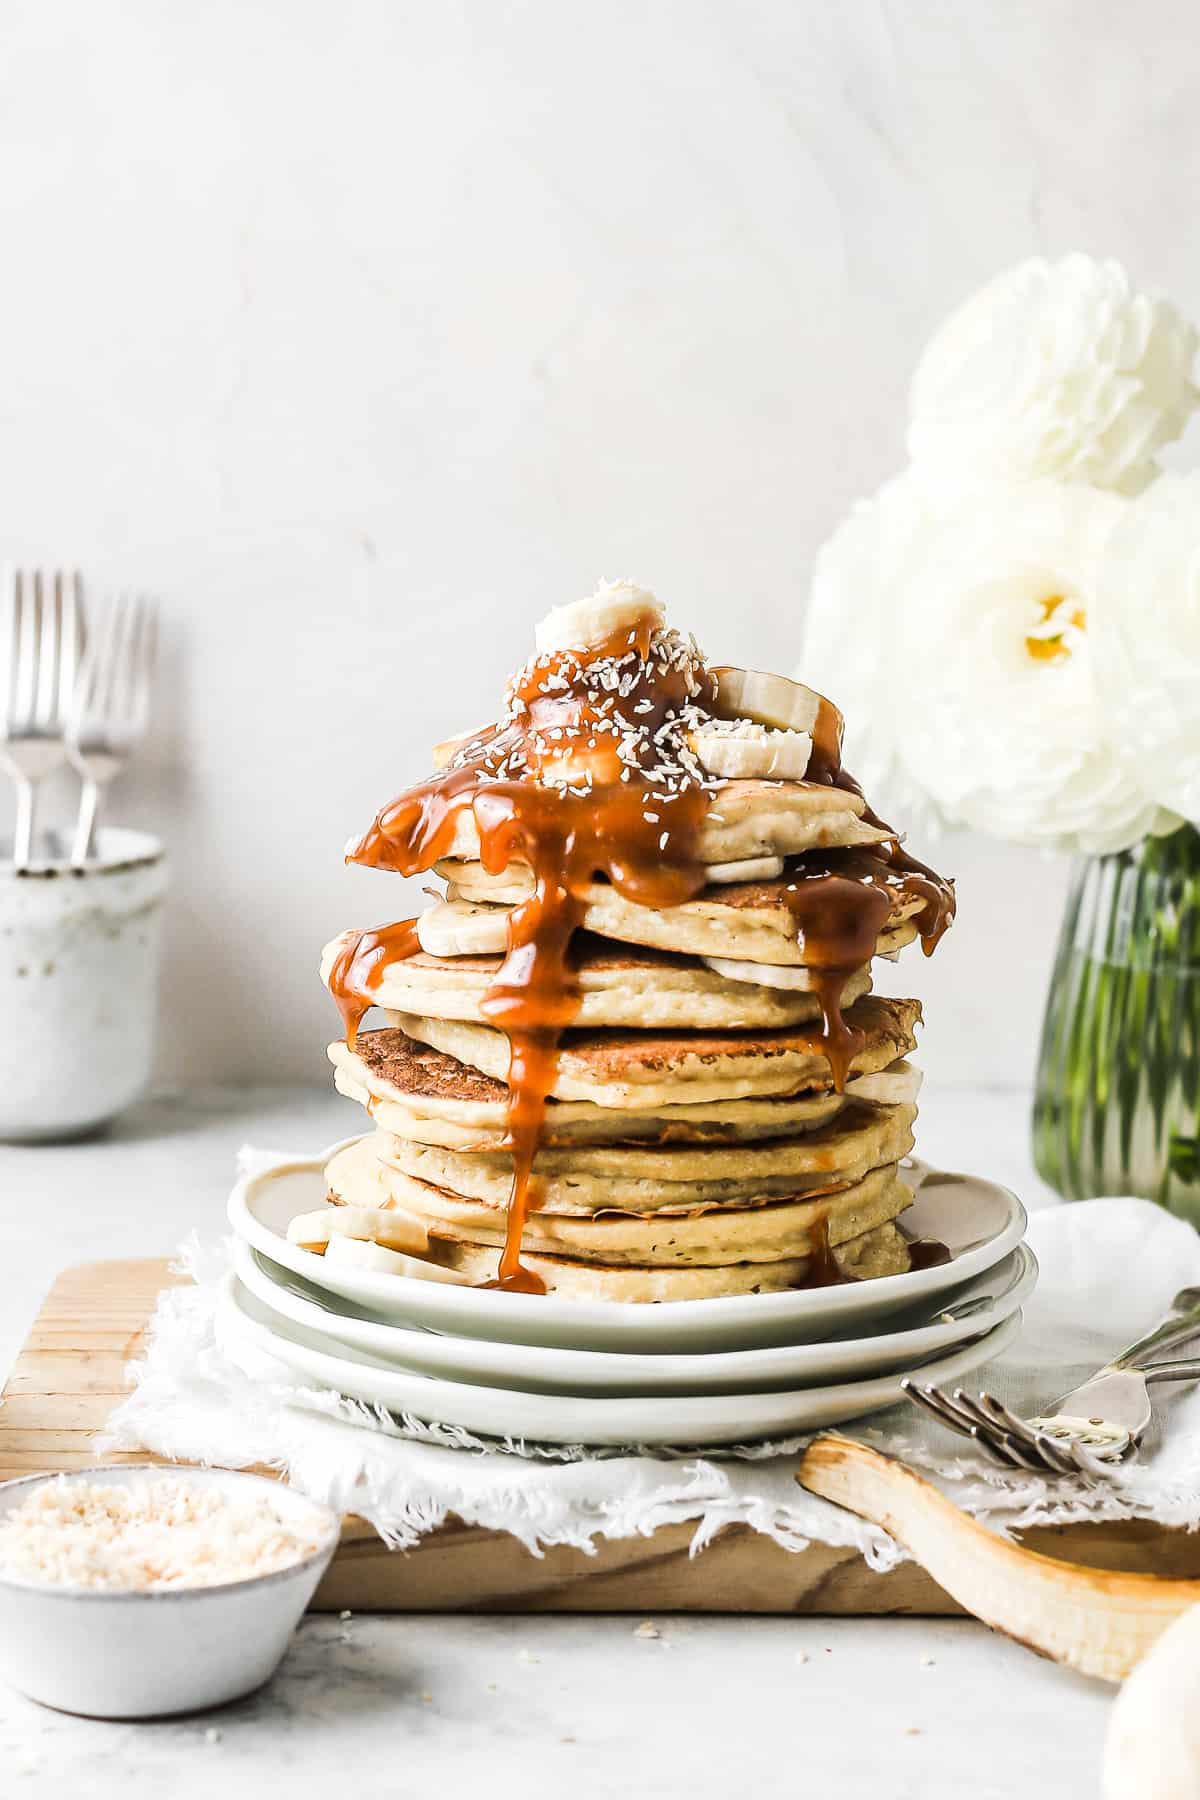 Stack of fluffy pancakes, topped with freshly sliced bananas and drizzled in caramel sauce